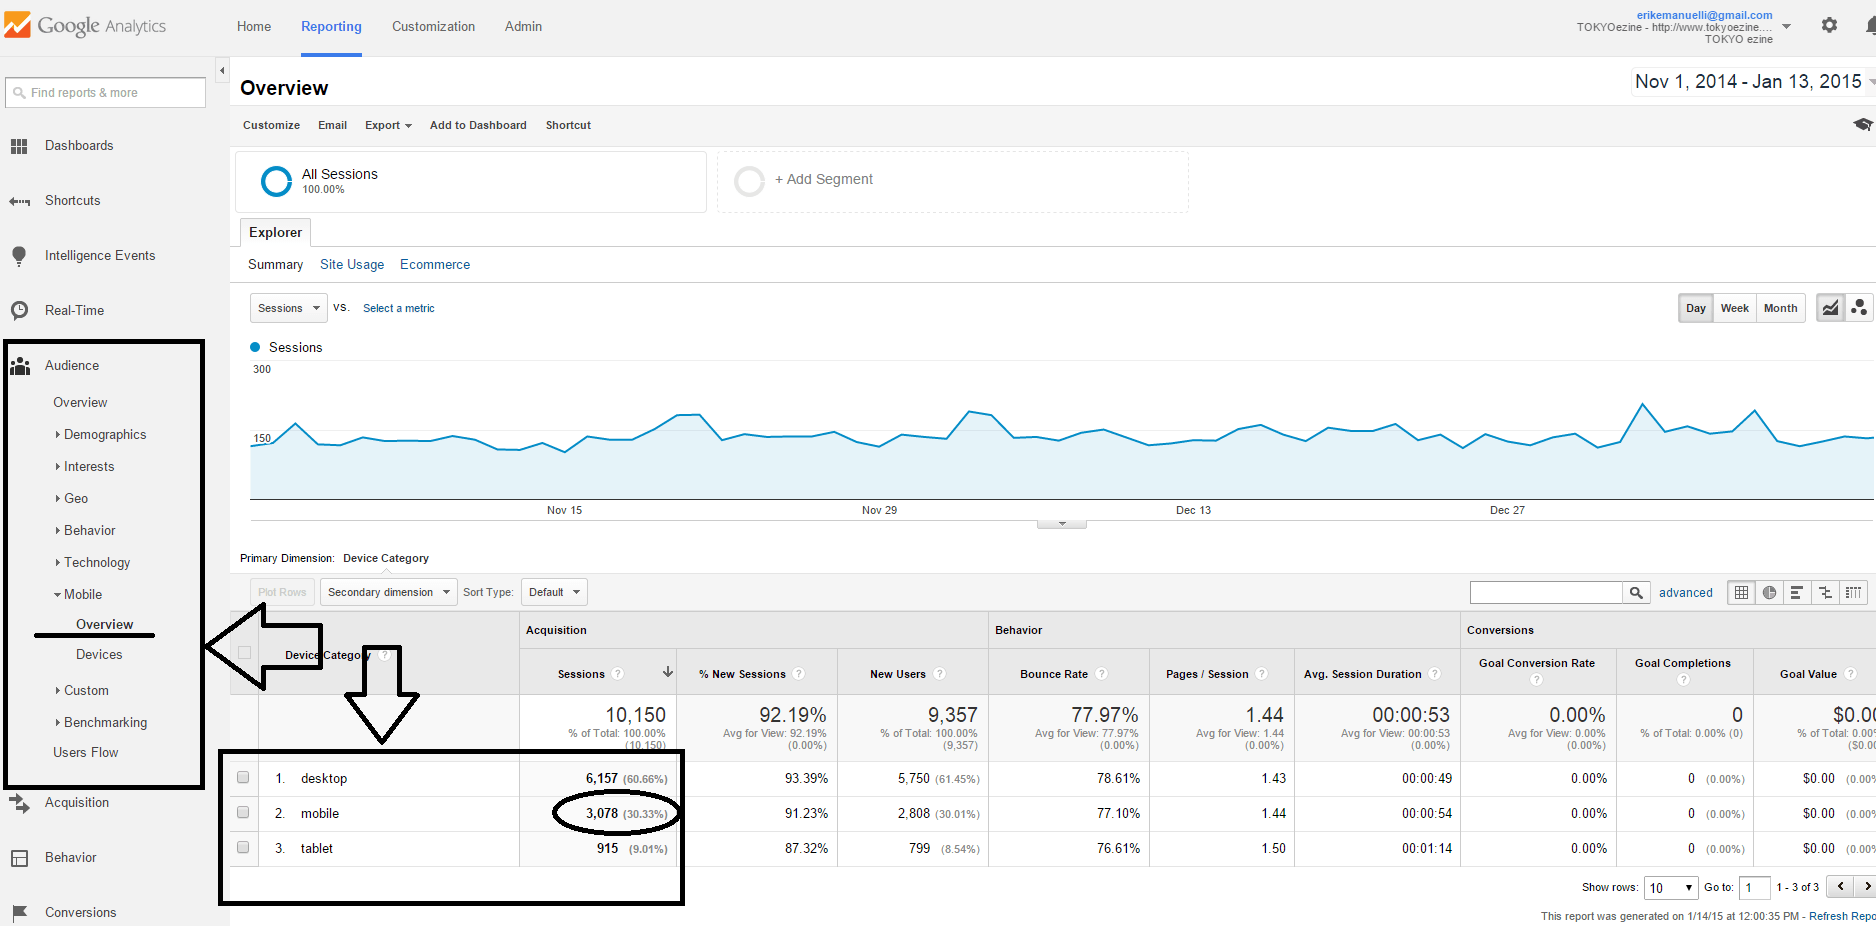 OKYOezine Google analytics data screenshot for November 2014-January 2015